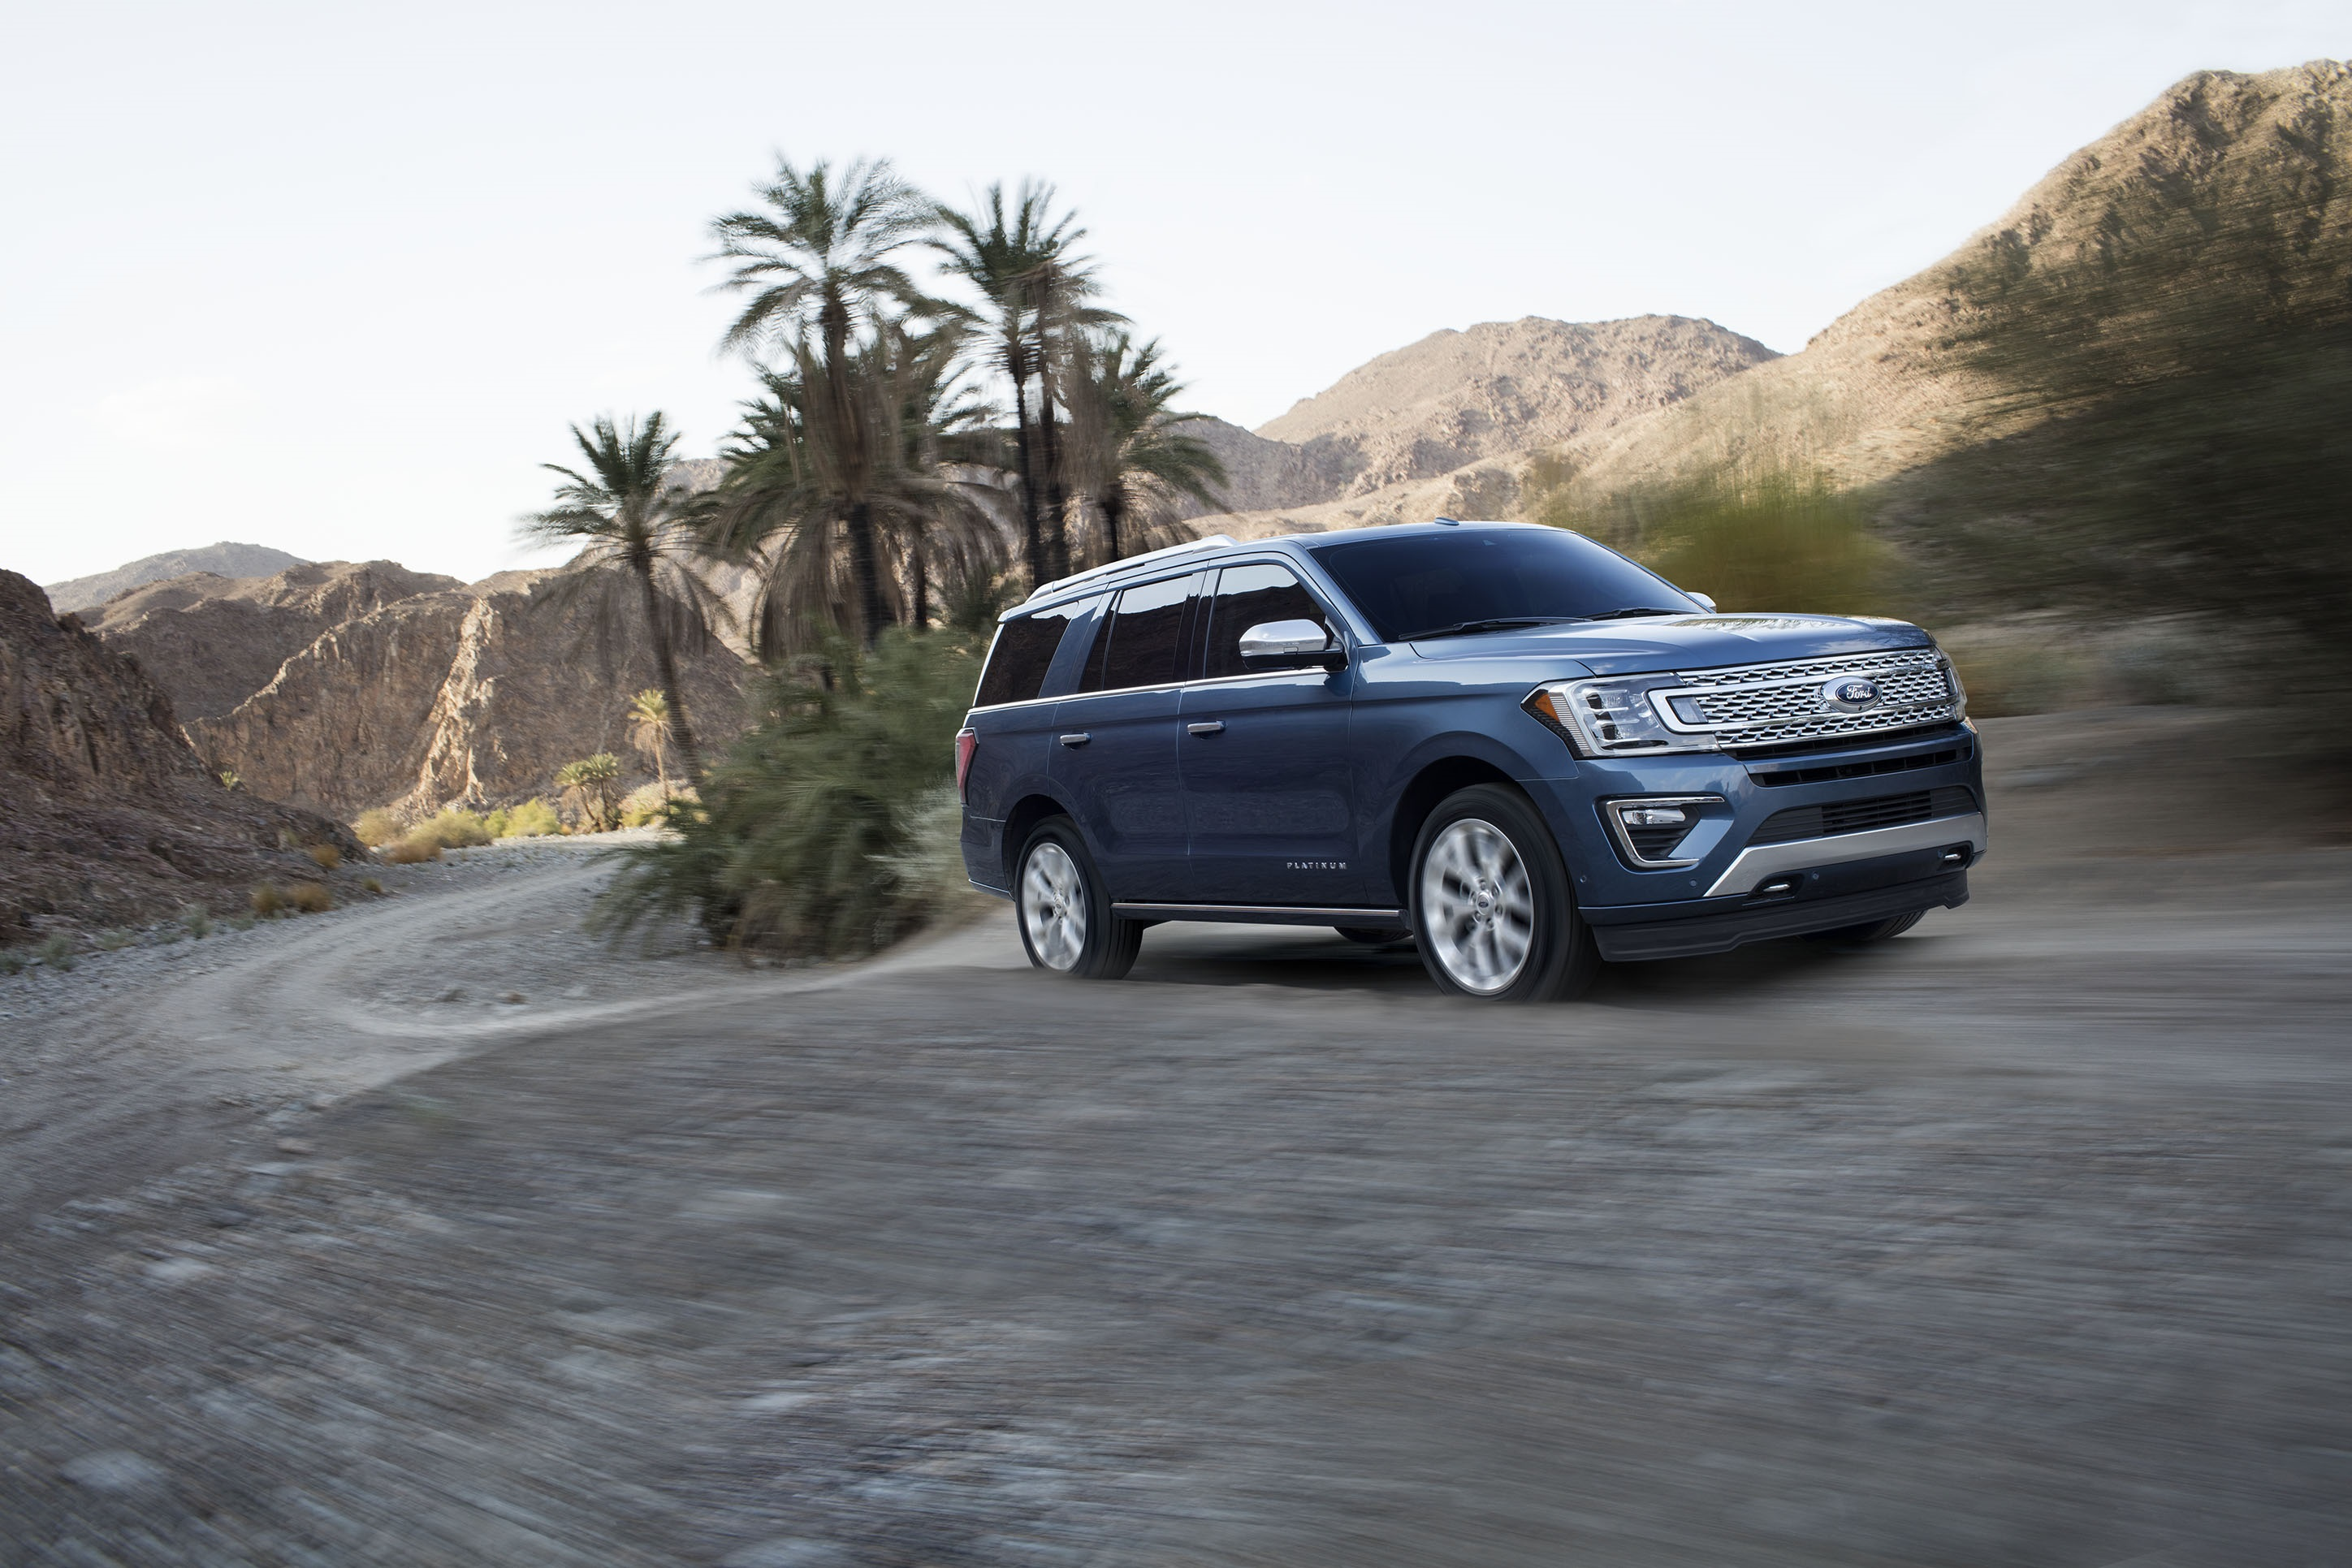 2018 Ford Expedition (2)